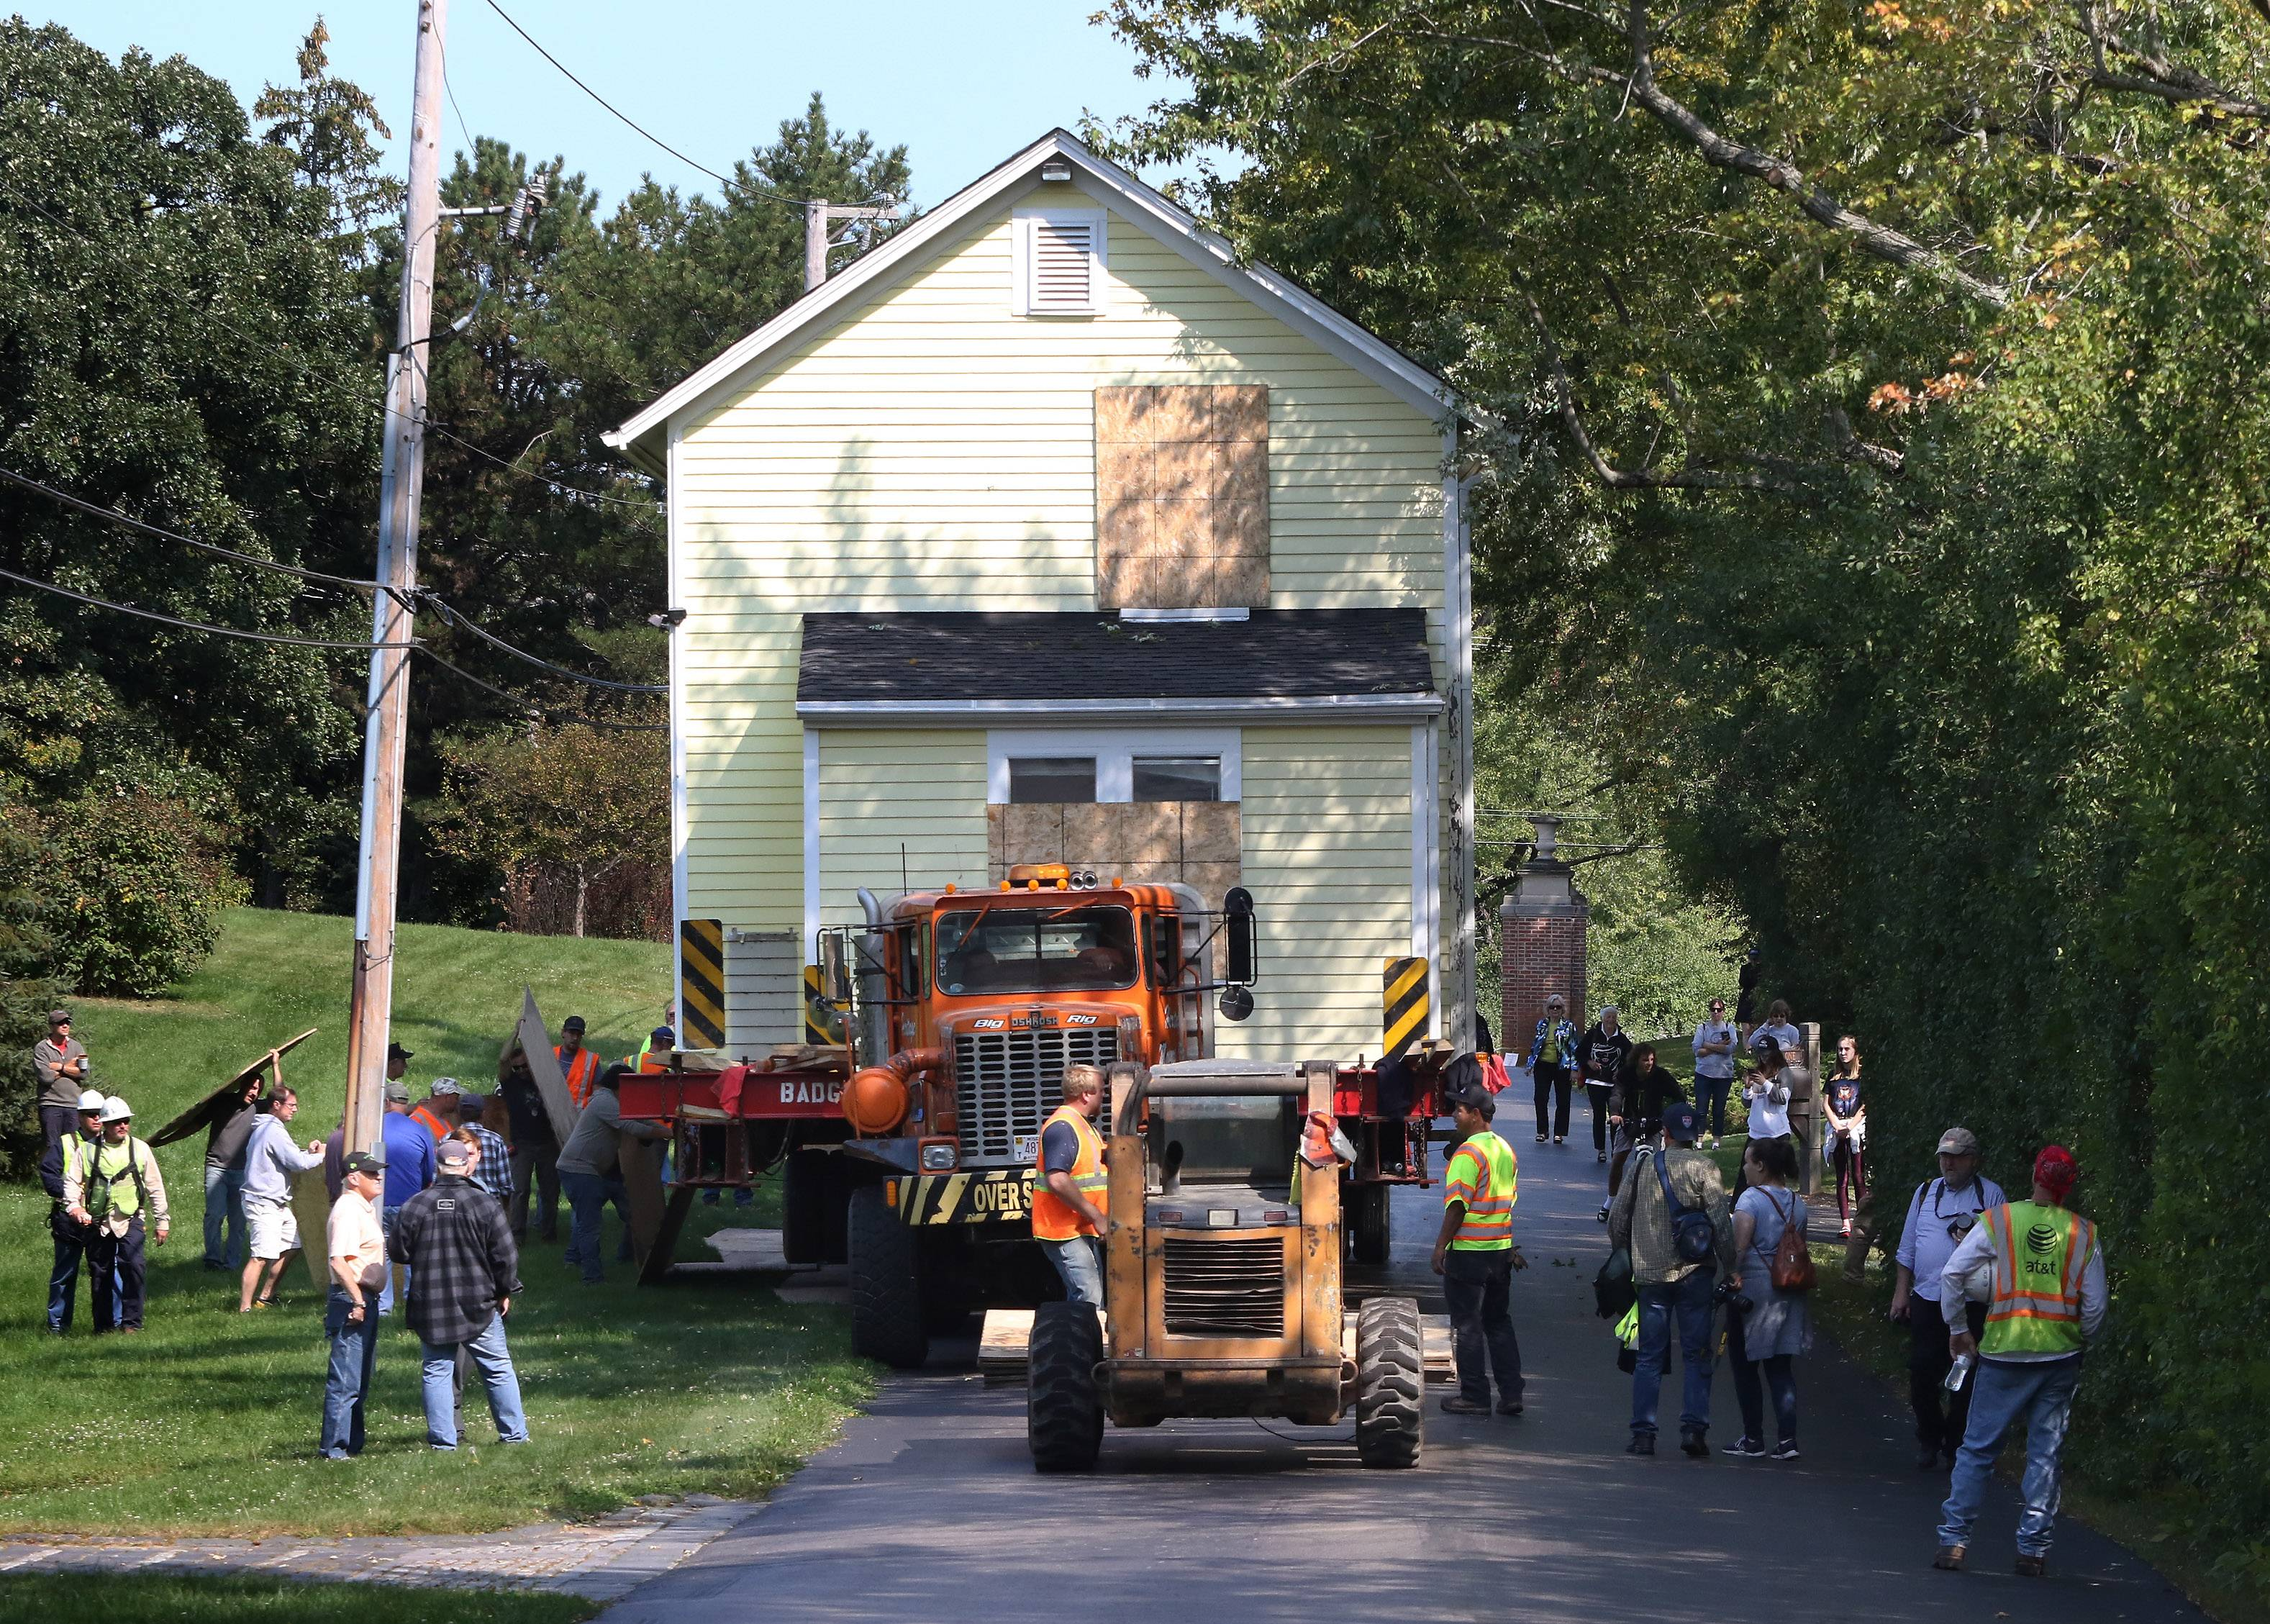 A 19th century house is moved Sunday along Oakdene Road in Barrington Hills. The move drew a crowd along the route from the house's starting point near downtown Barrington.